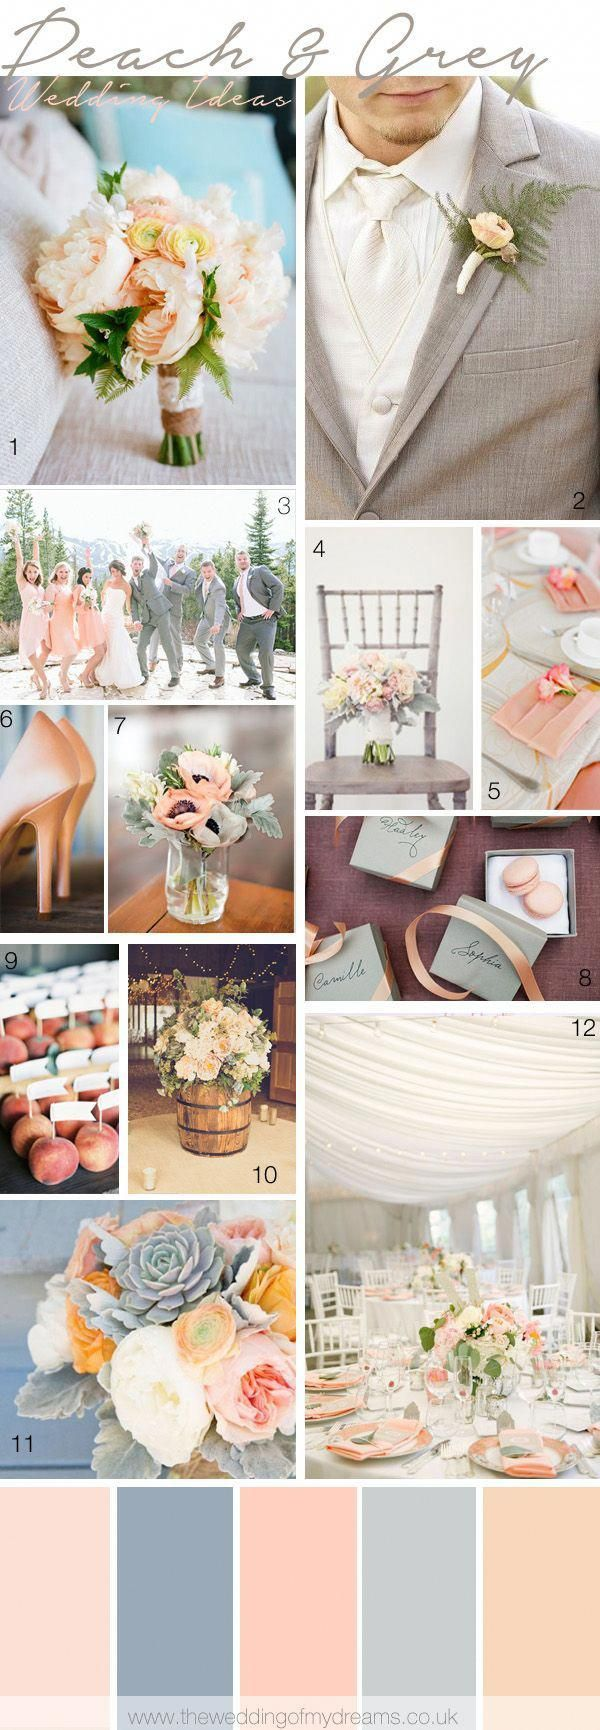 Choosing wedding colors and inspiration - peach and grey ...